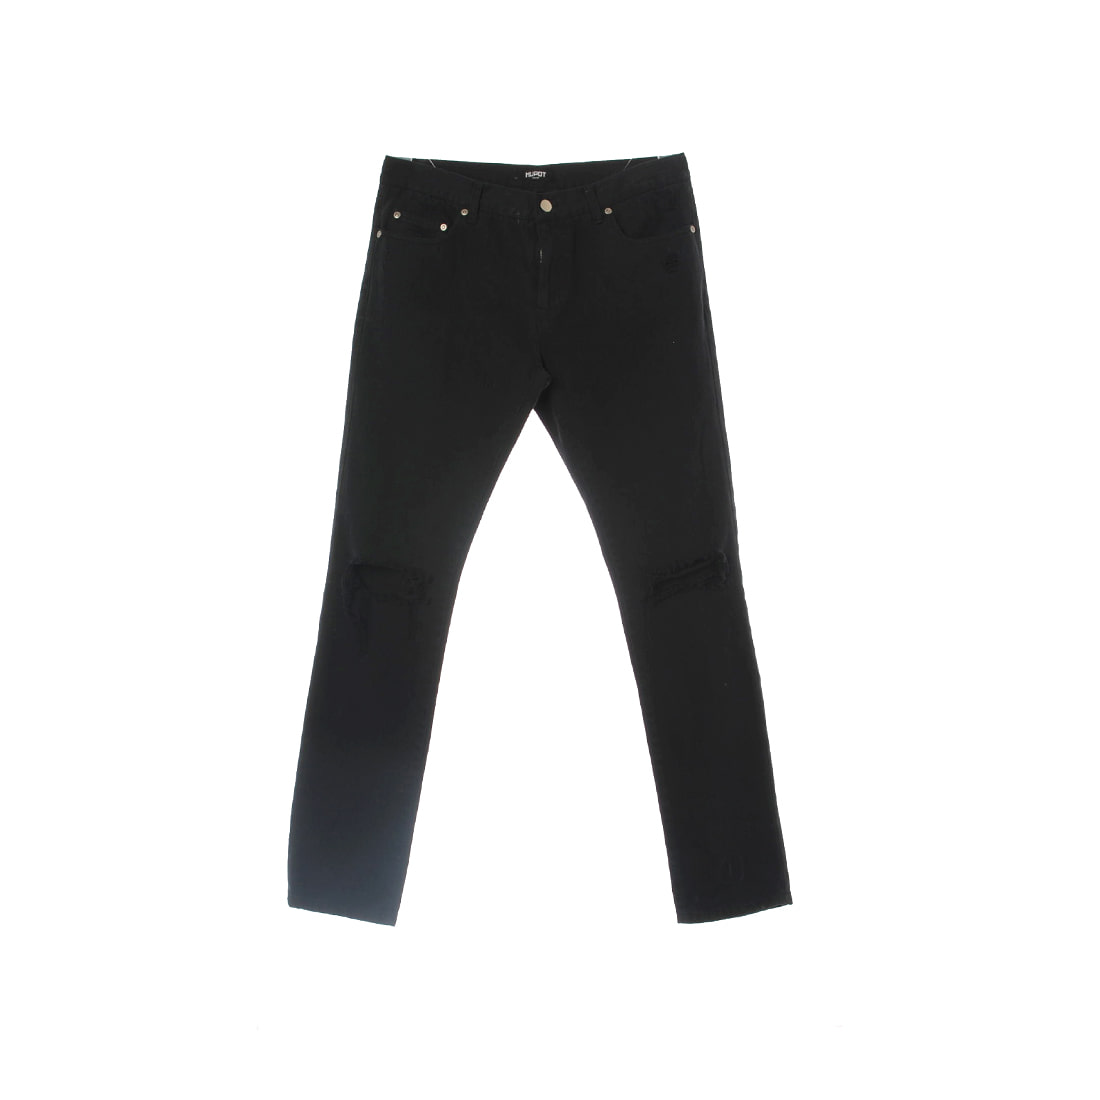 ORIGINAL SKINNY JEANS BLACK